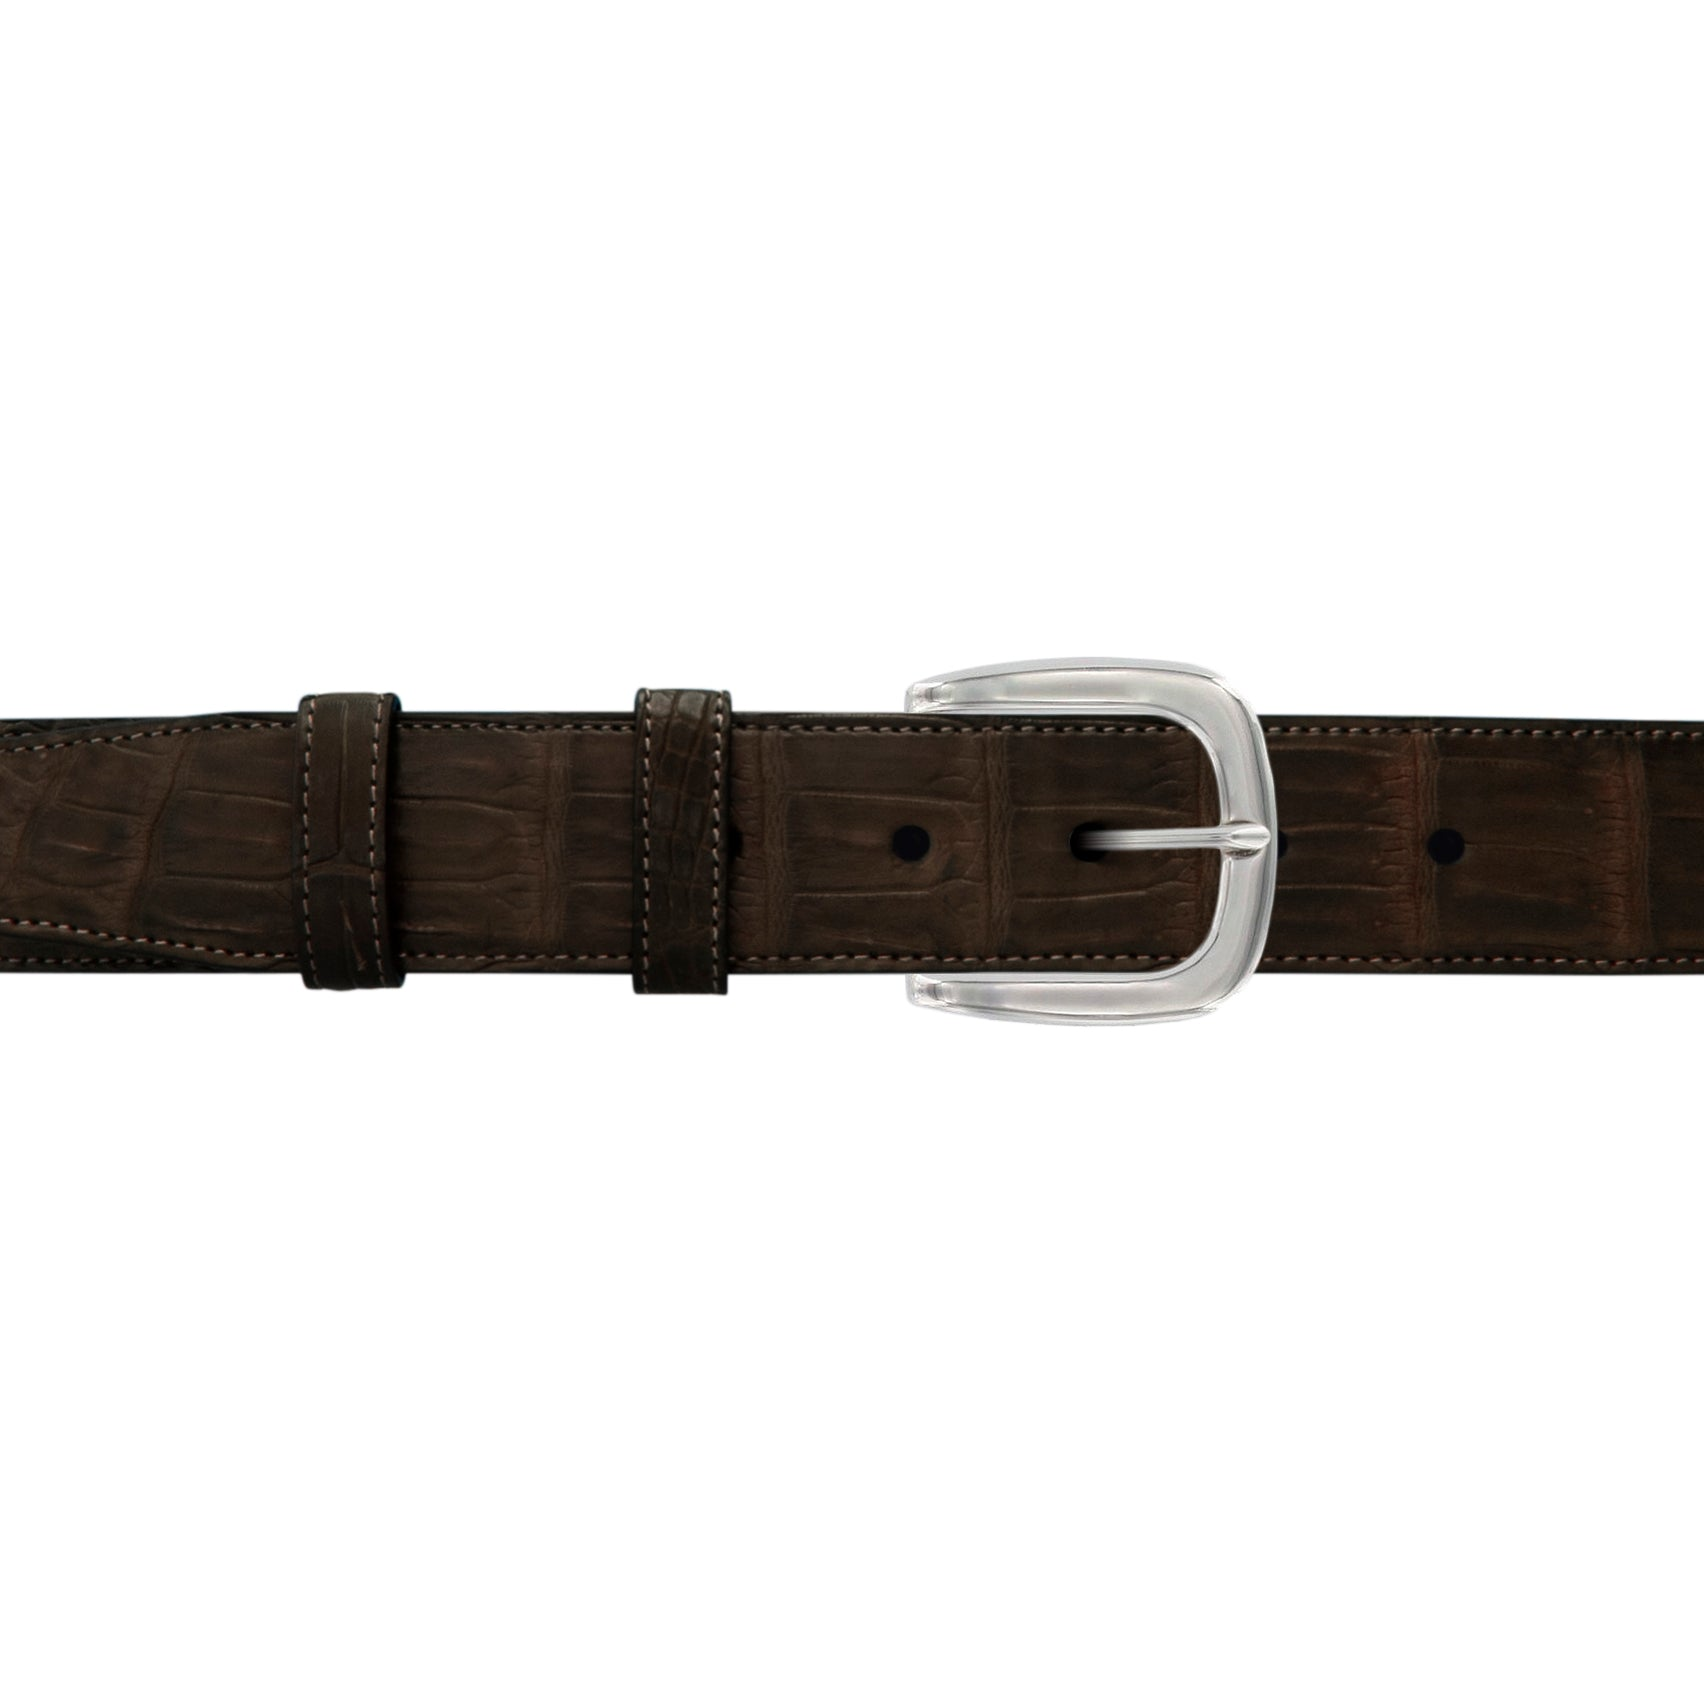 "1 1/2"" Espresso Classic Belt with Oxford Cocktail Buckle in Polished Nickel"